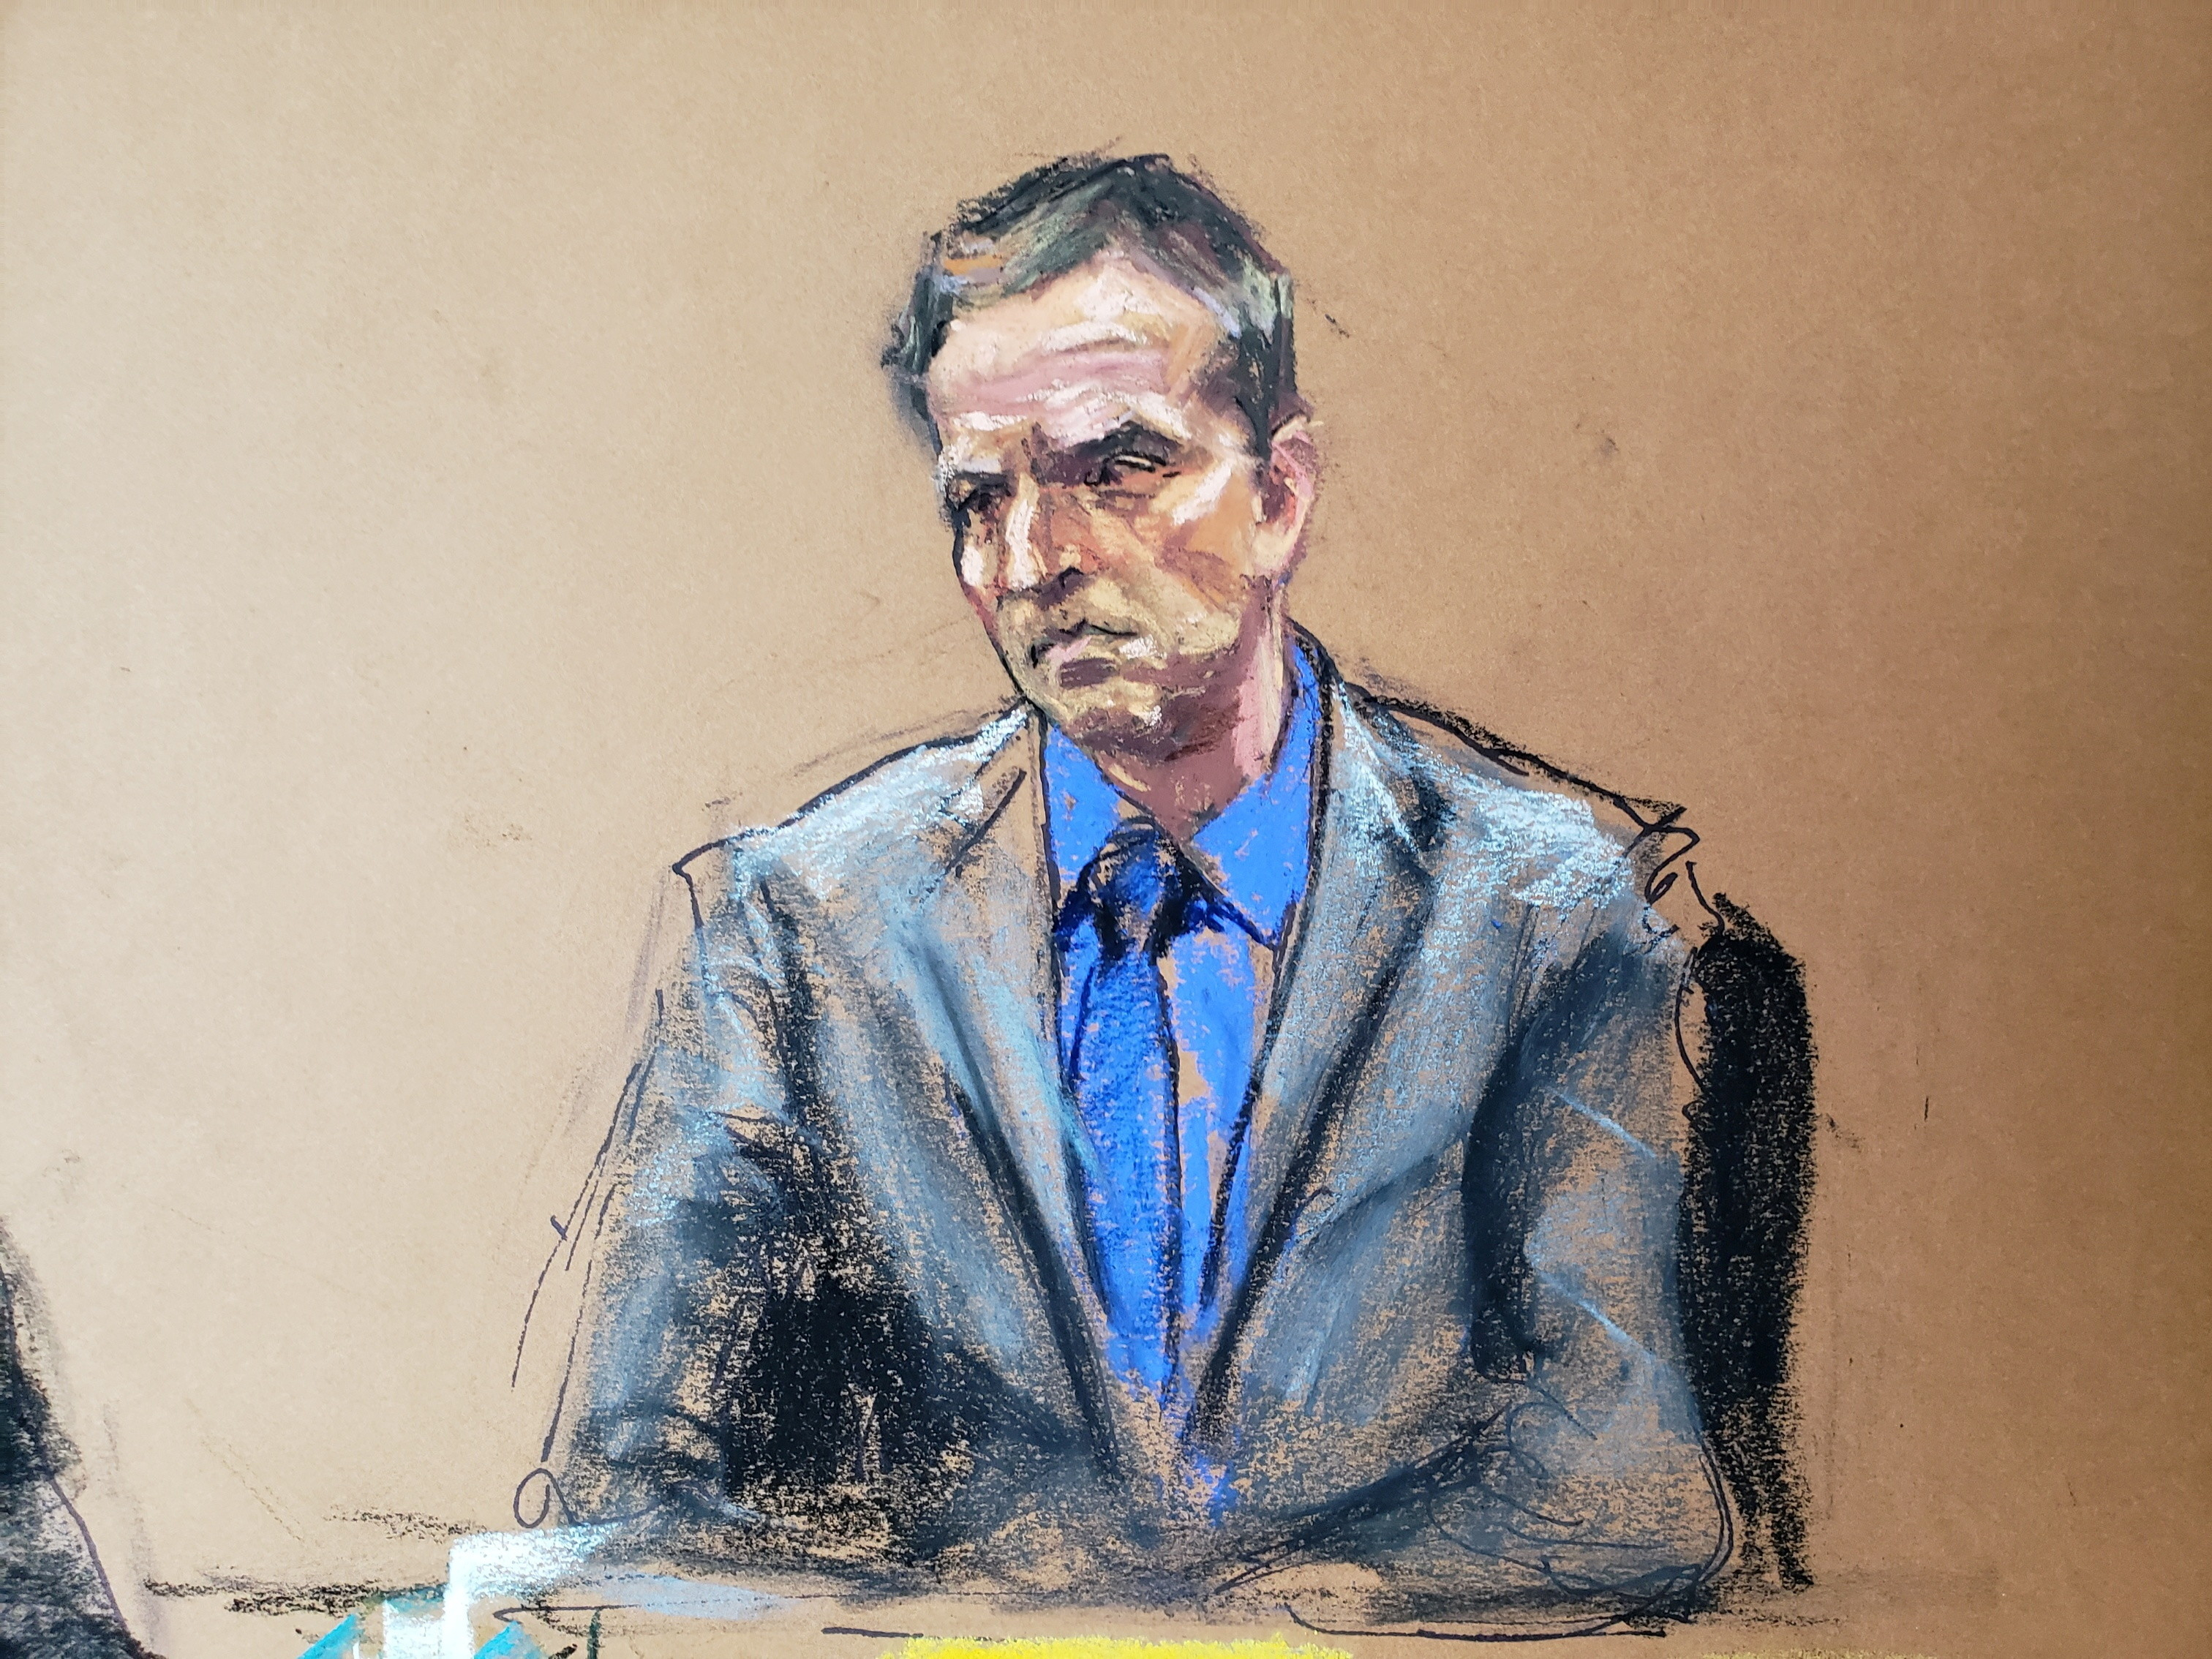 image of the courtroom sketch of former Minneapolis police officer Derek Chauvin